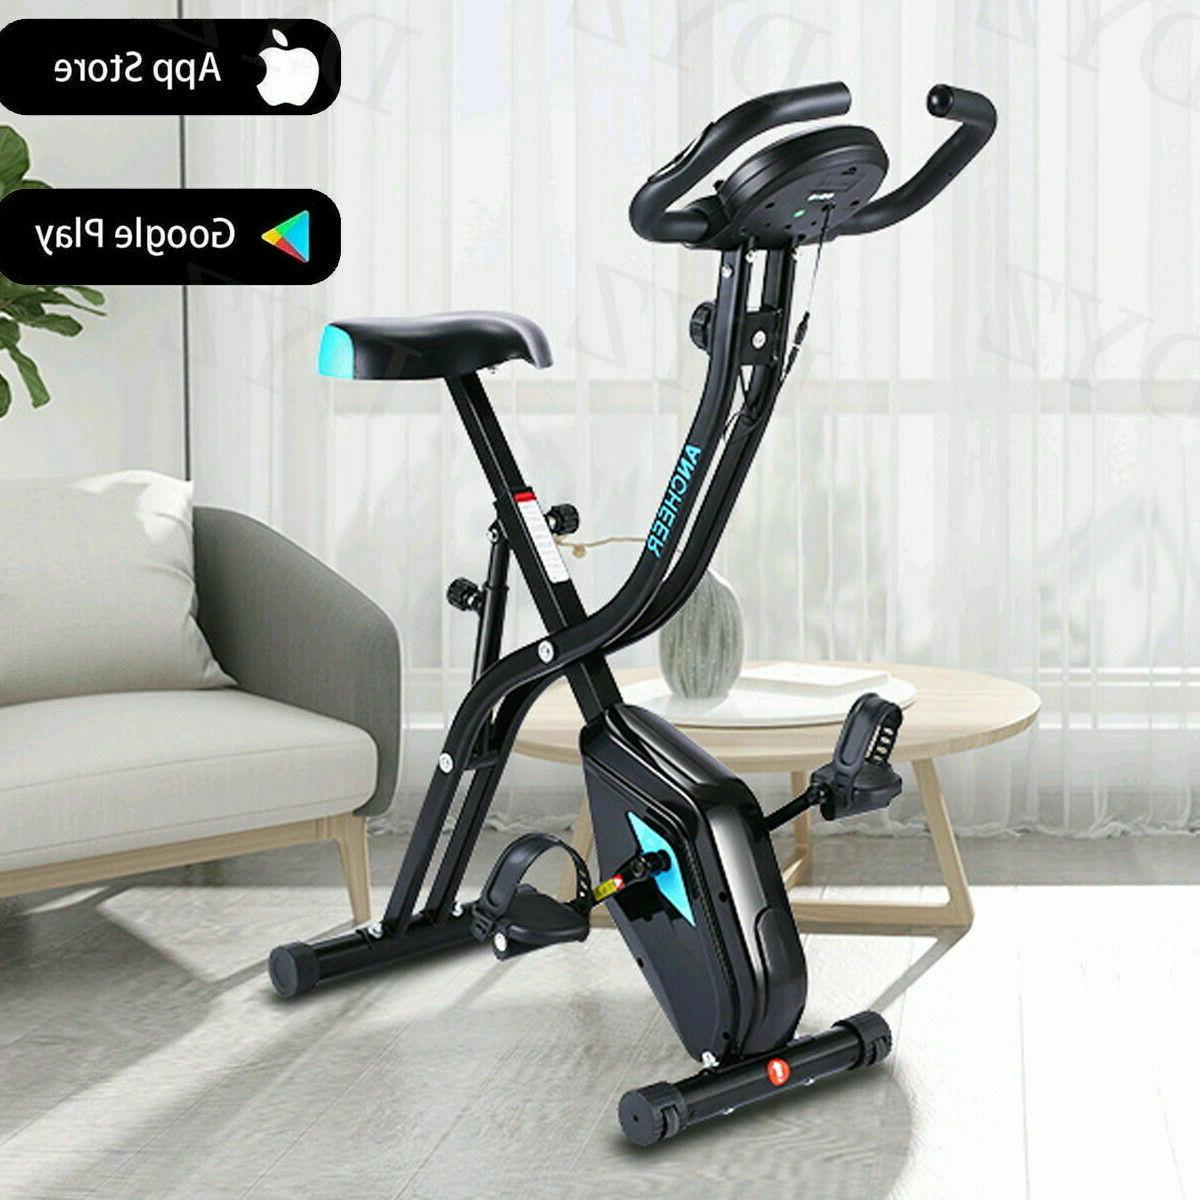 ANCHEER Folding Upright Exercise X-Bike Magnetic Stationary